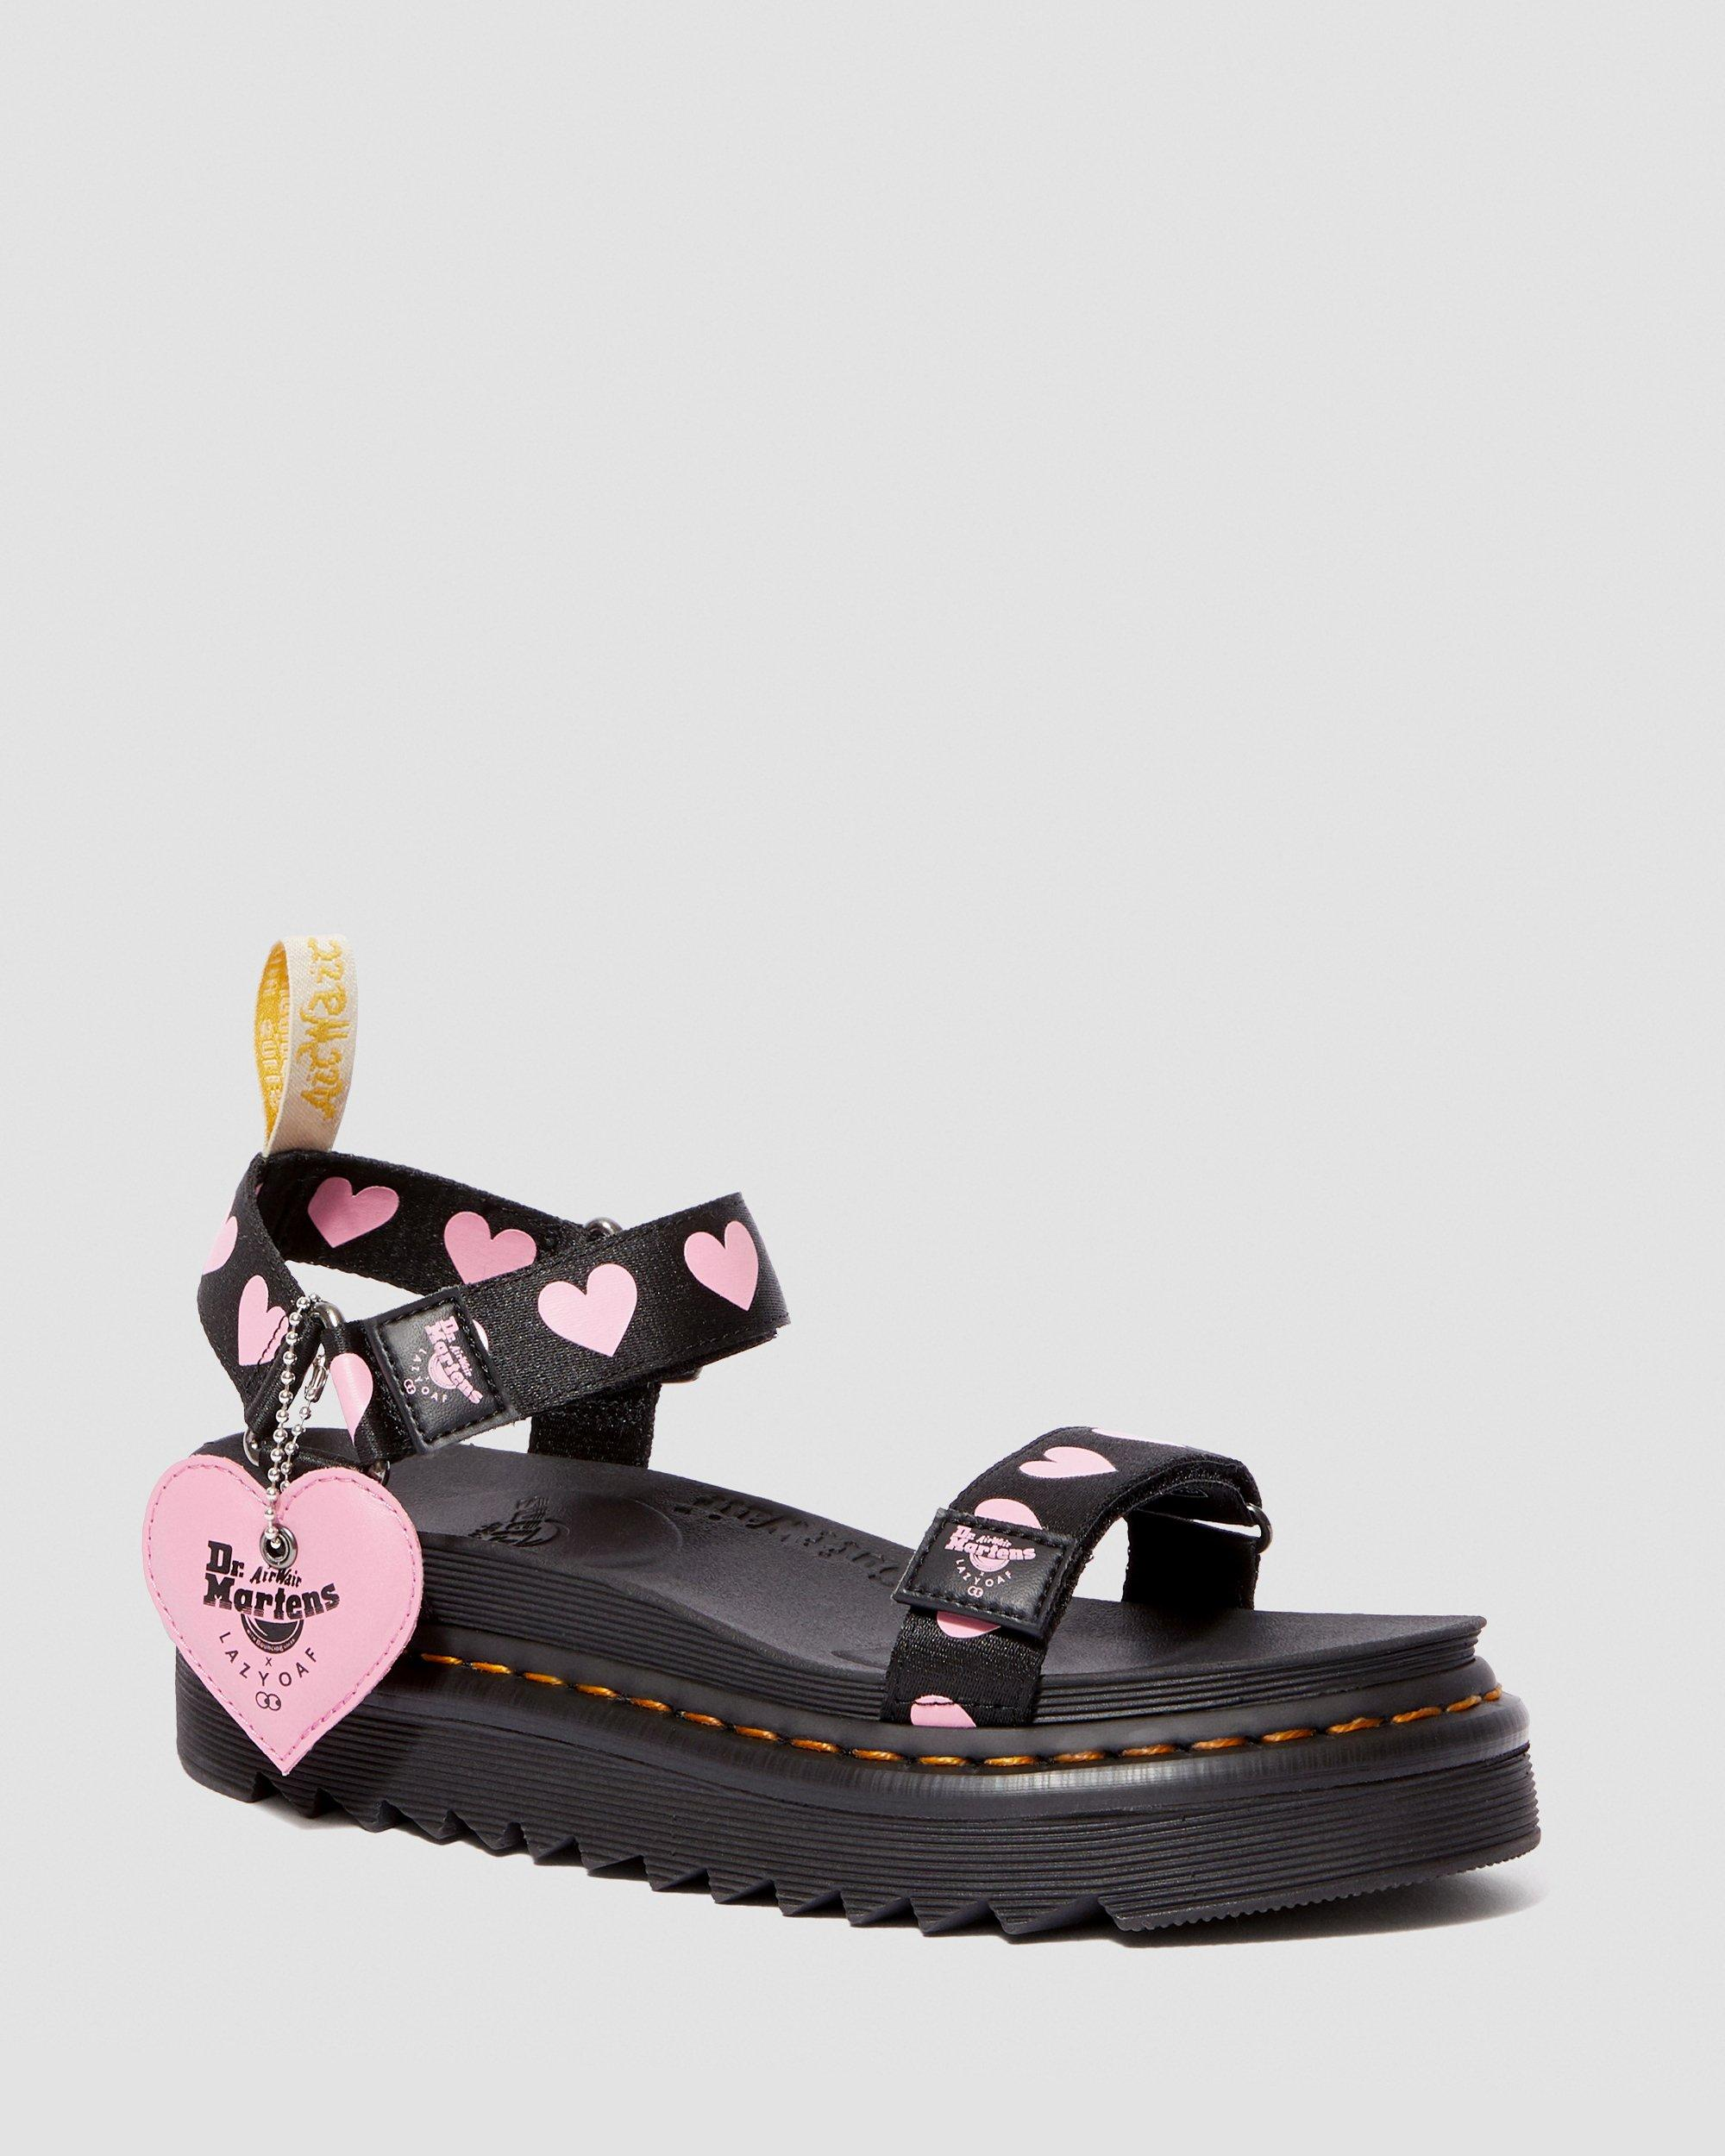 x Lazy Oaf Vegan Lo Sandals